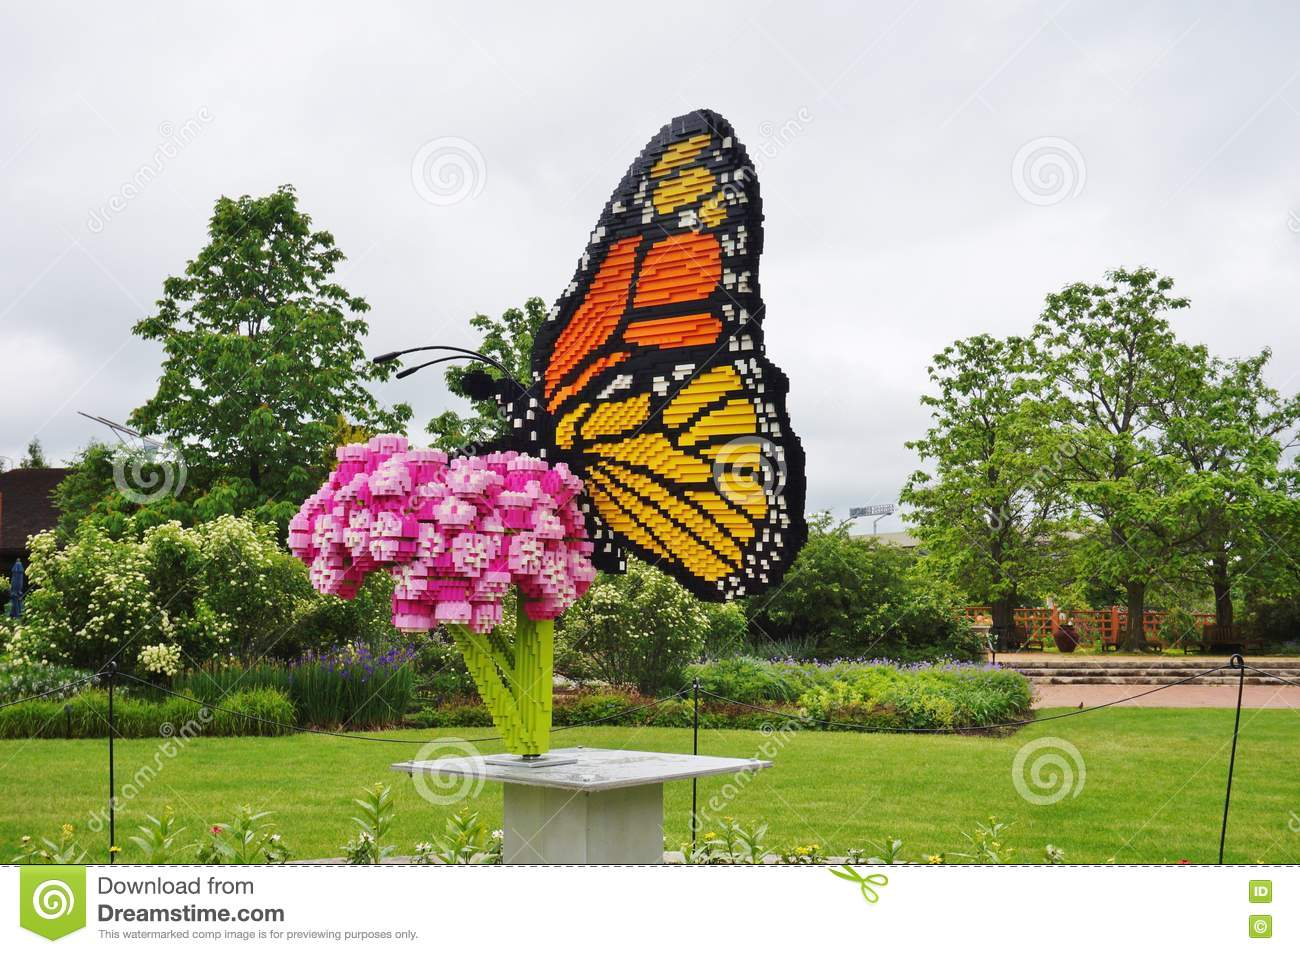 Lego Sculptures On Display At The Reiman Gardens At Iowa